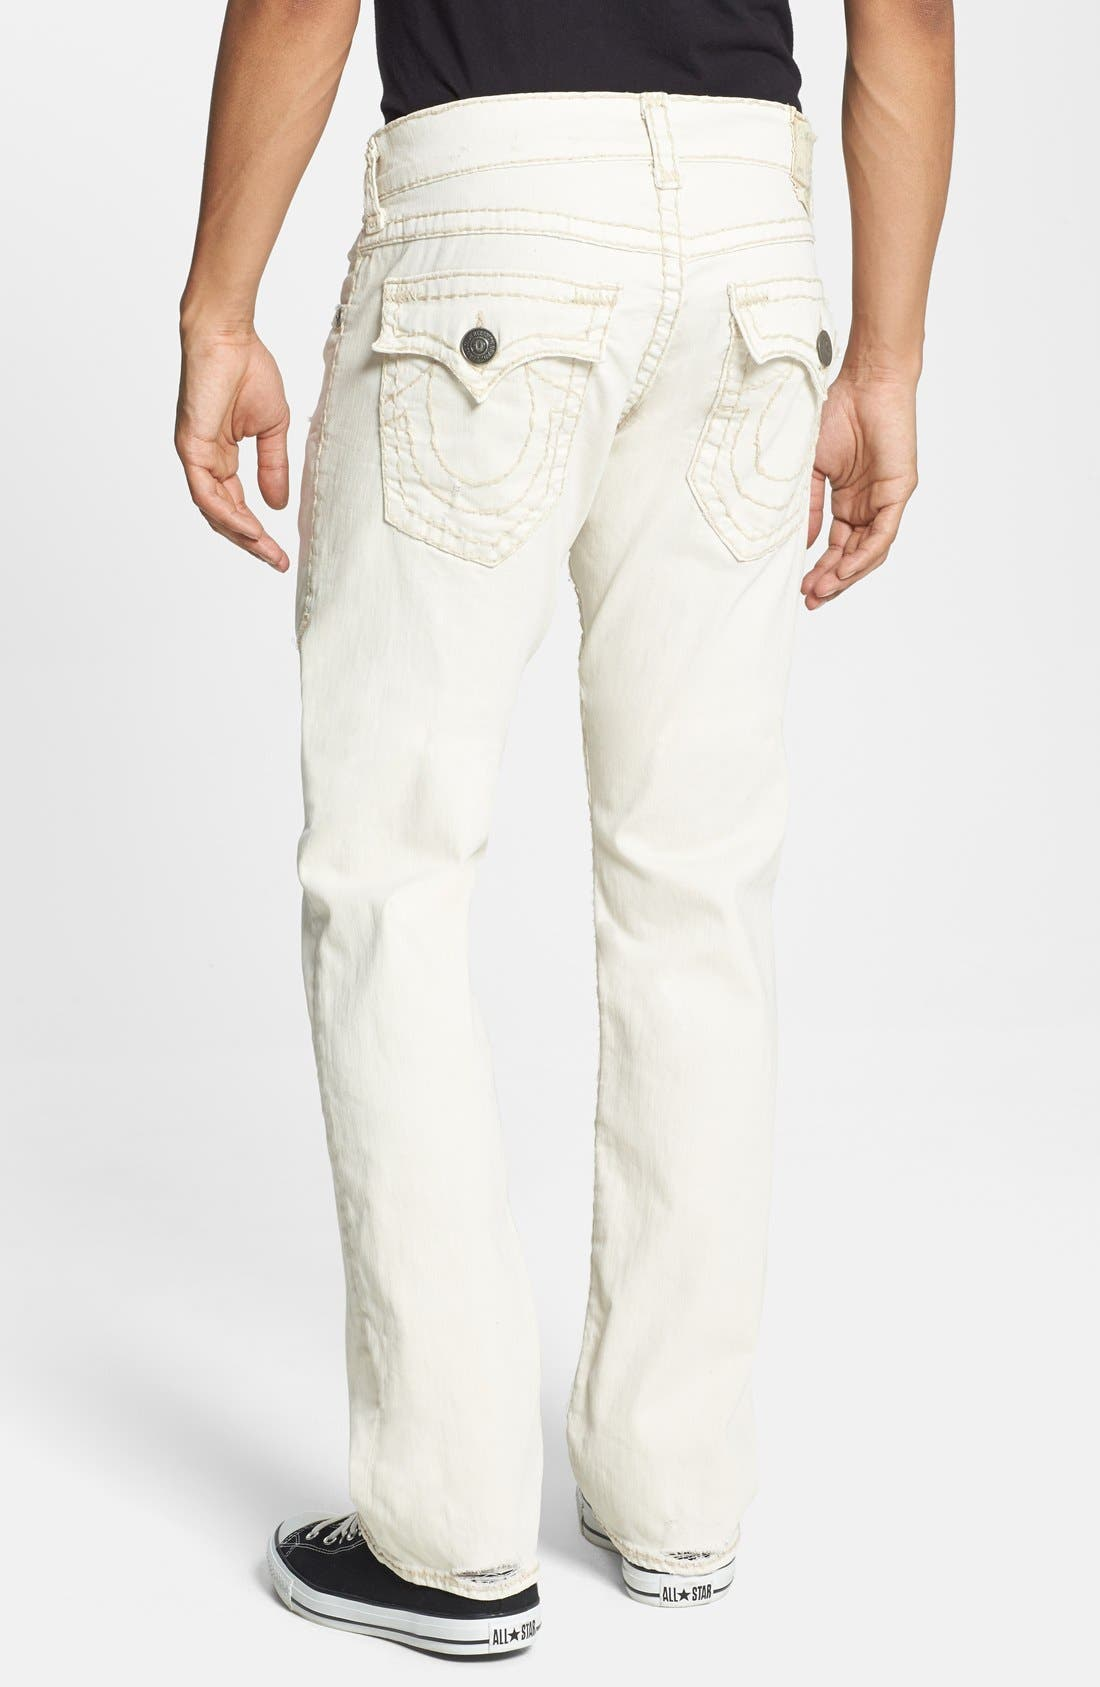 Main Image - True Religion Brand Jeans 'Ricky' Relaxed Fit Jeans (Bak Joshua Tree)